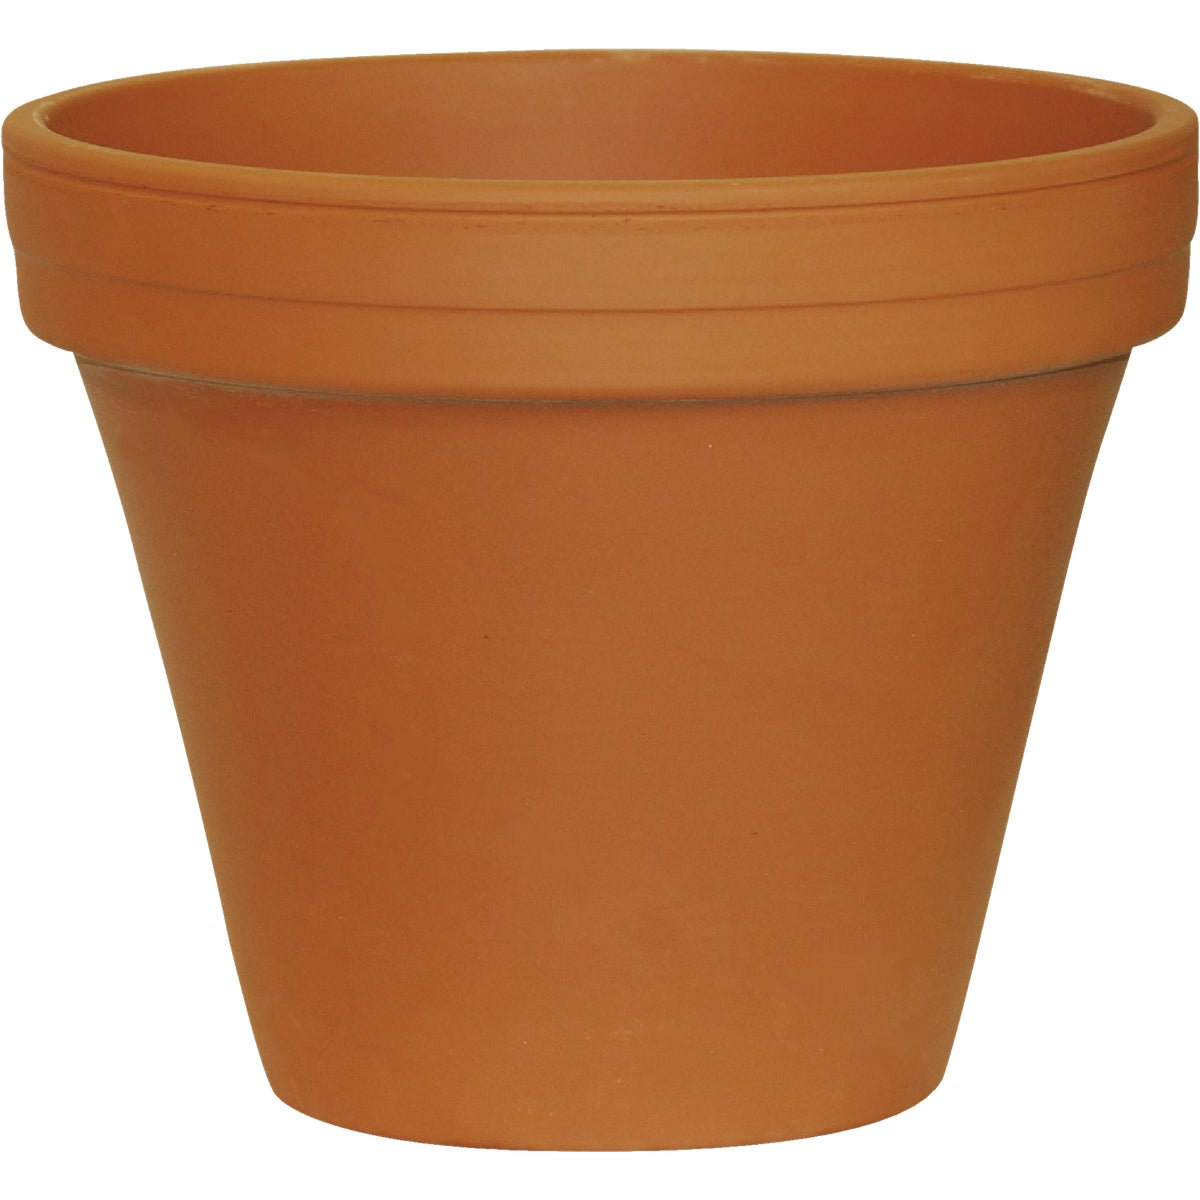 "6"" TERRA COTTA CLAY POT - M8090PZ by Deroma"